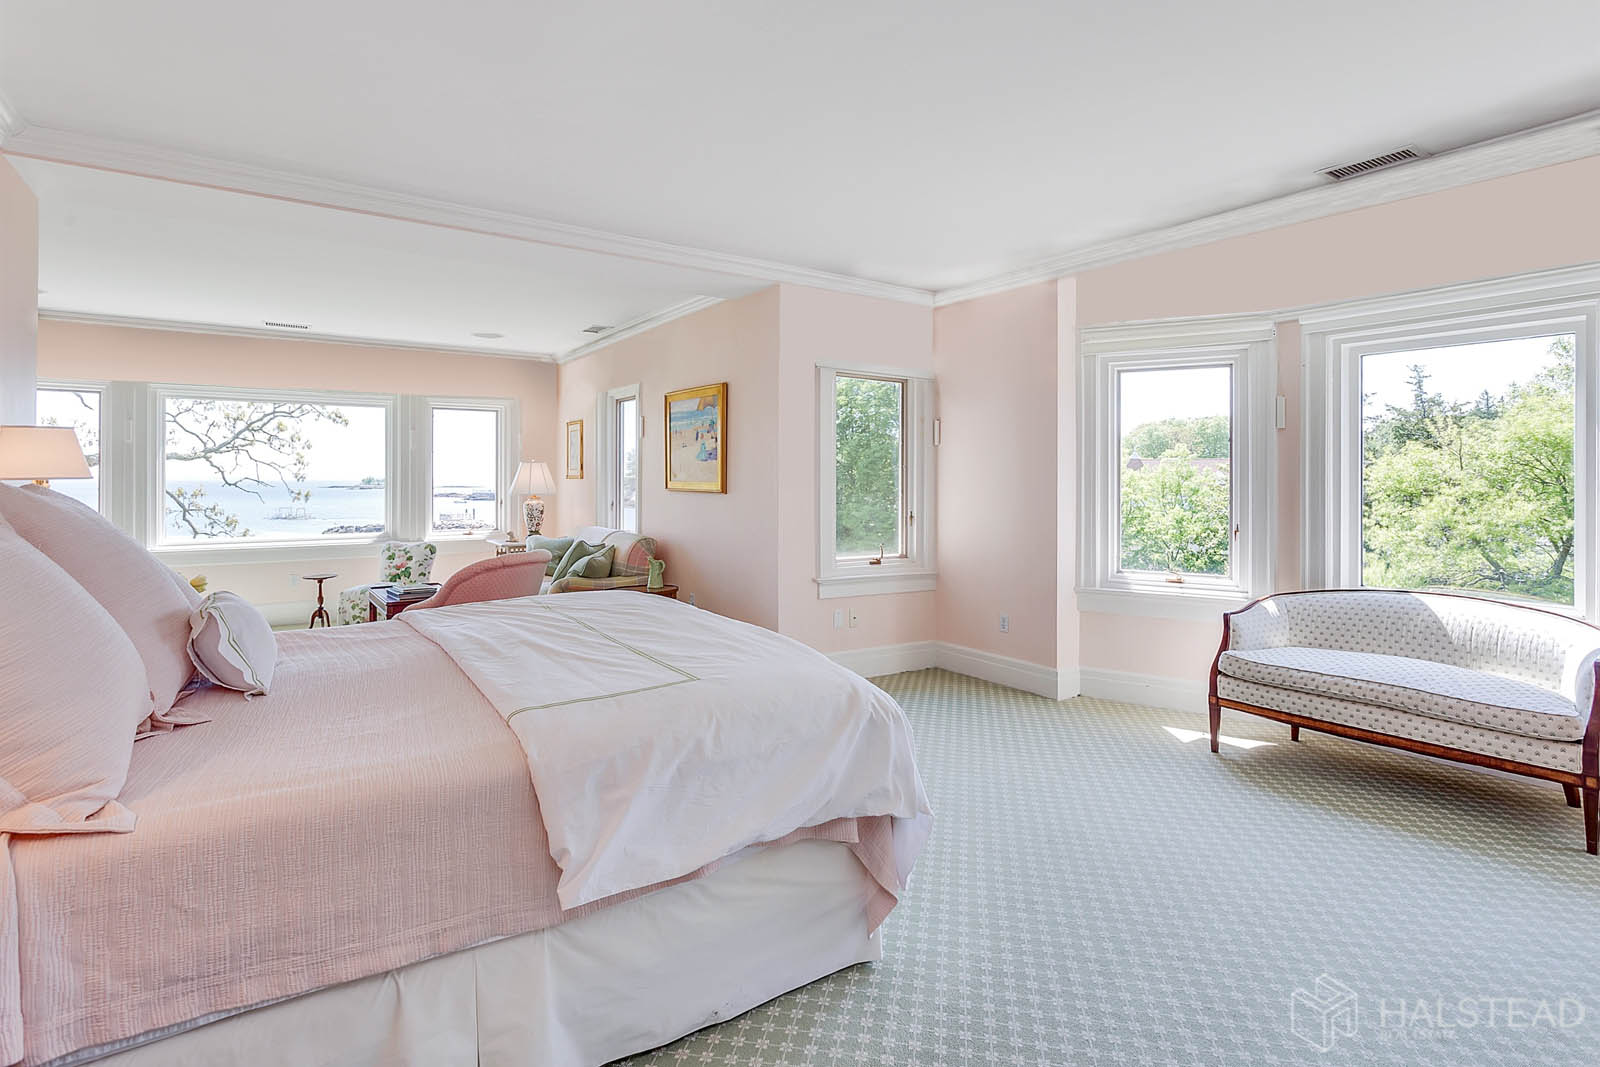 8 Butlers Island Road, Darien, Connecticut, 06820, $7,495,000, Property For Sale, Halstead Real Estate, Photo 24